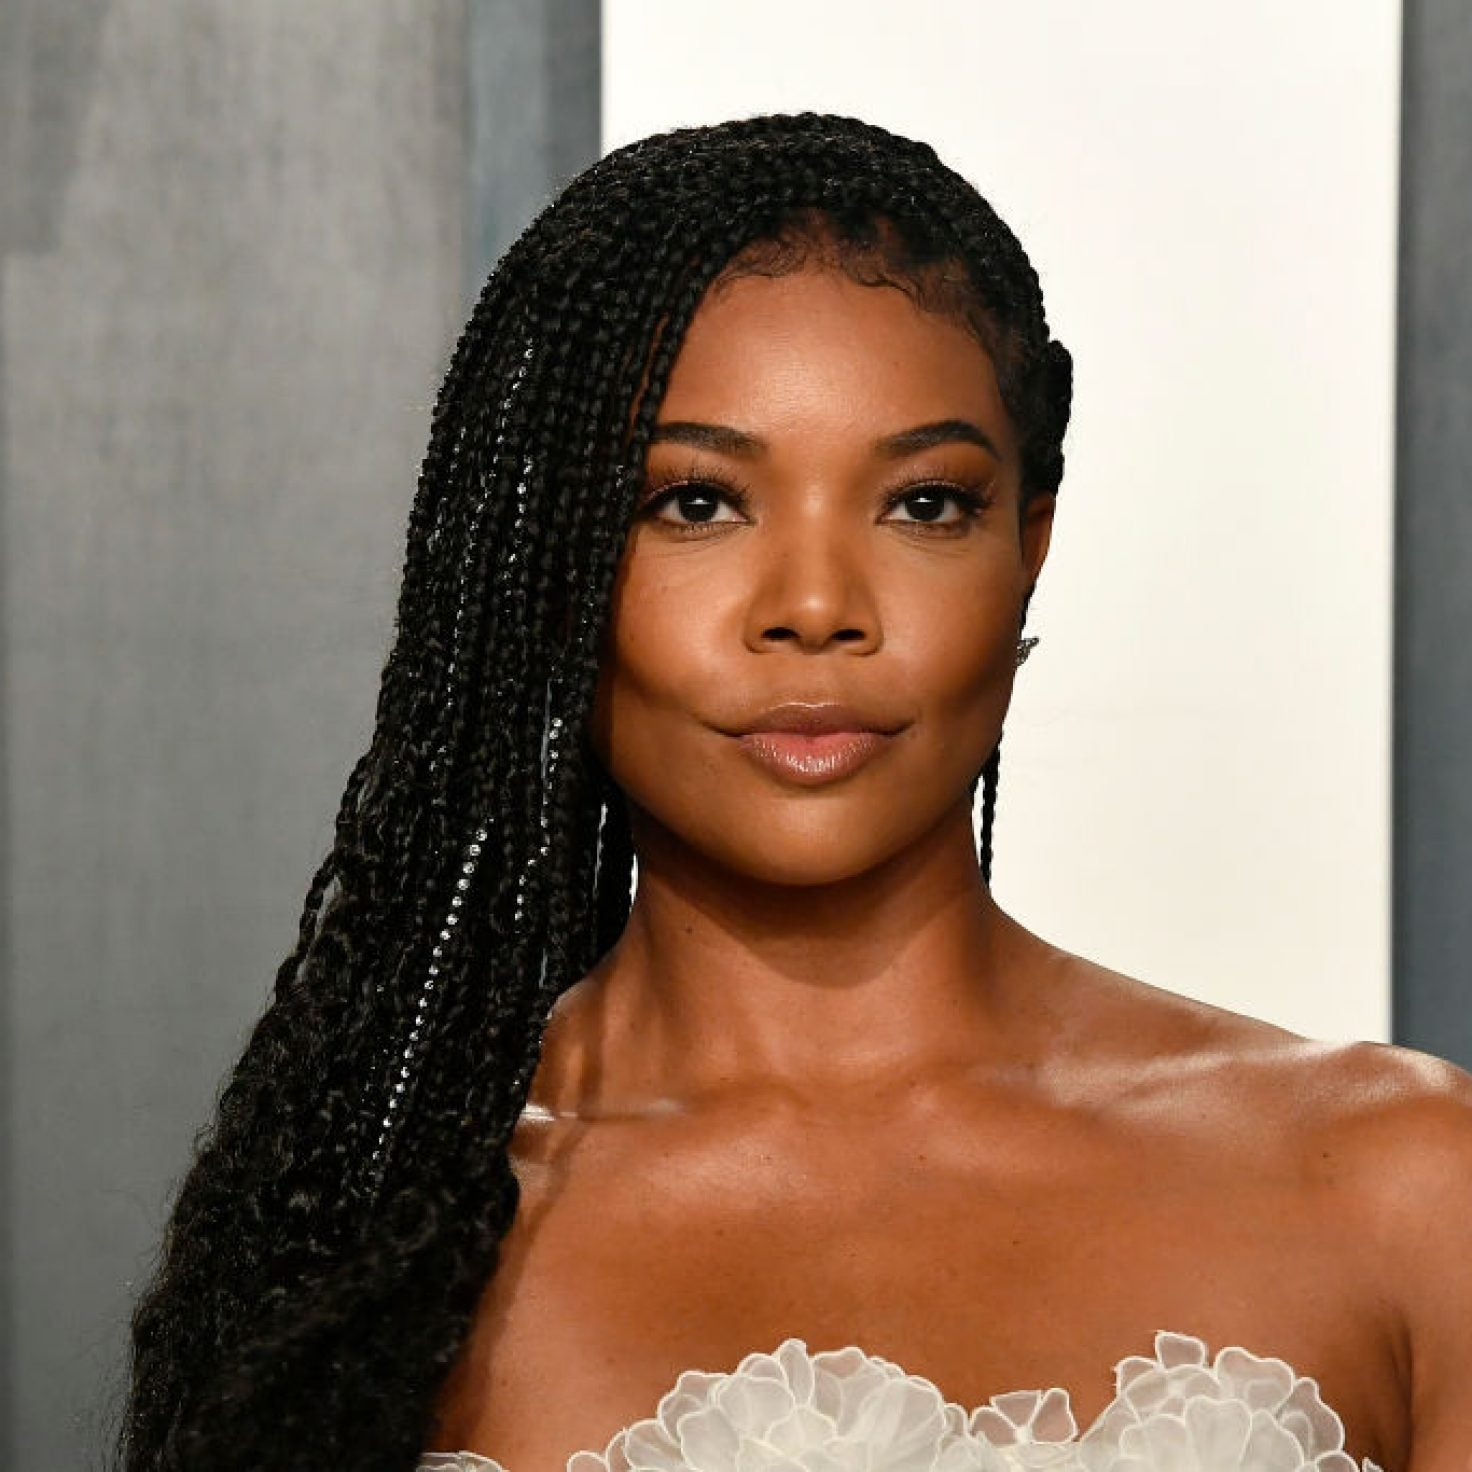 Gabrielle Union Says She Doesn't Understand Terry Crews's 'Motivation'